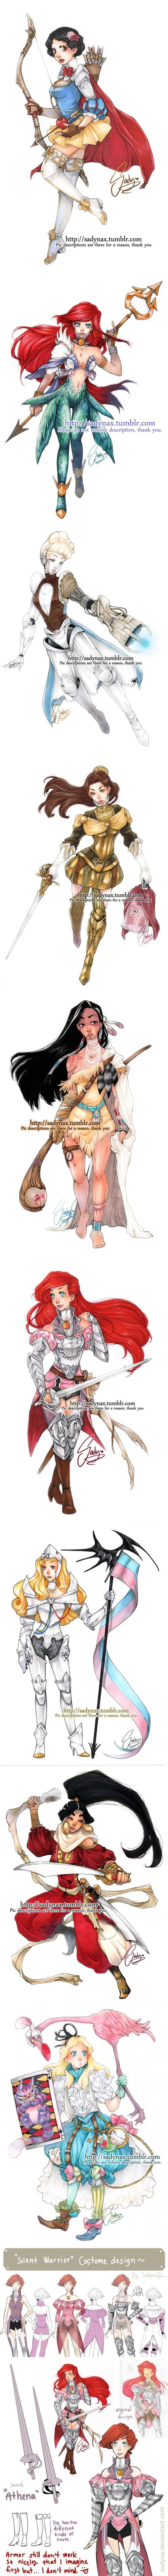 """Disney princesses reimagined as warriors - nice start, but didn't go """"warrior"""" enough on several [9gag]"""